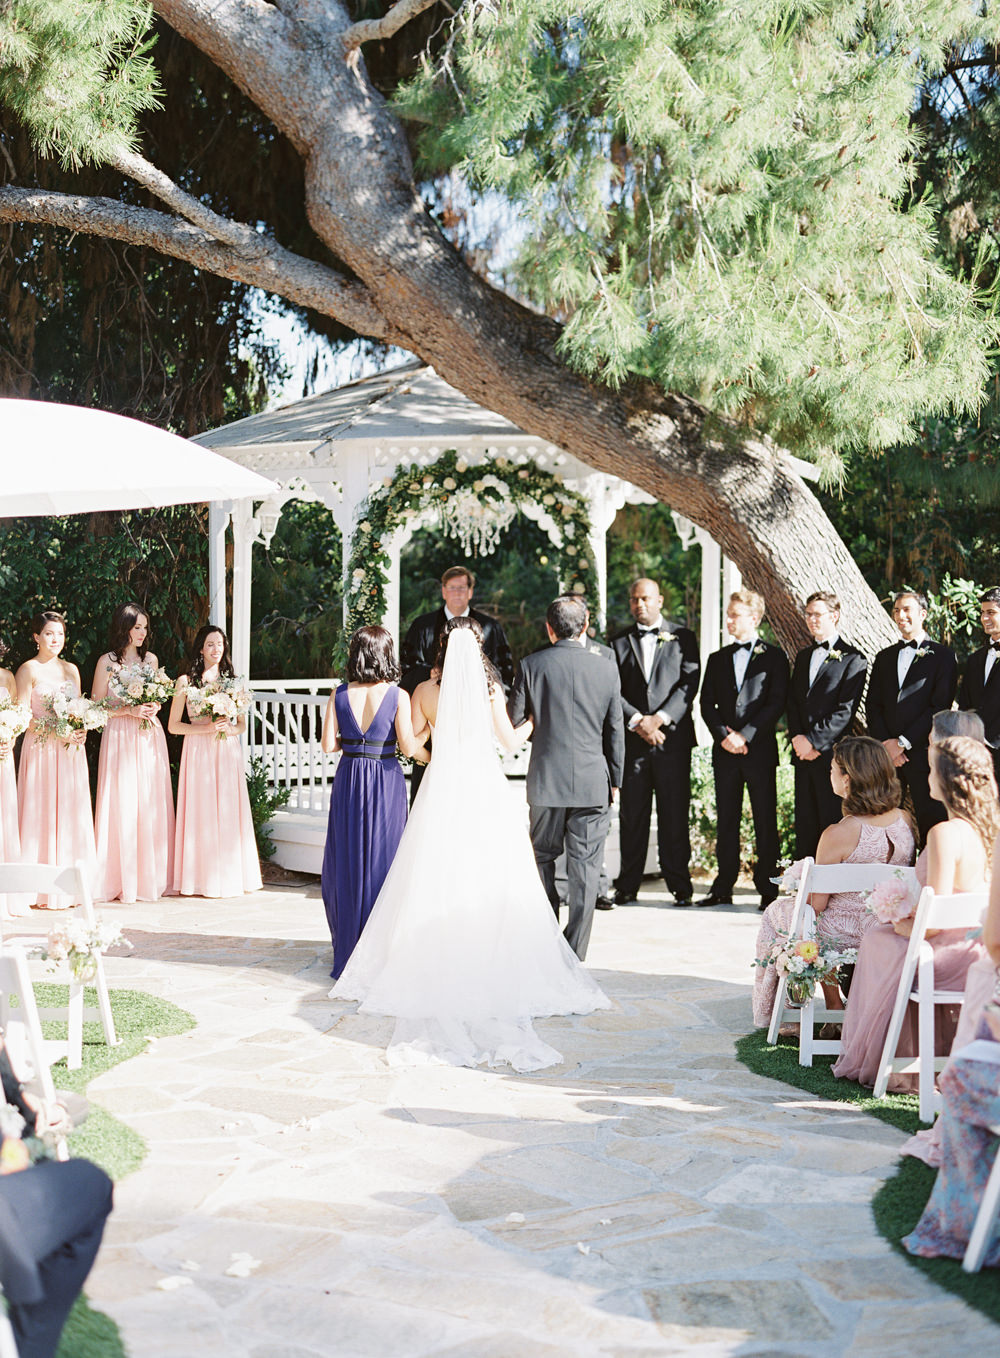 RomanticGardenWedding_WhiskersandWillow_074.jpg